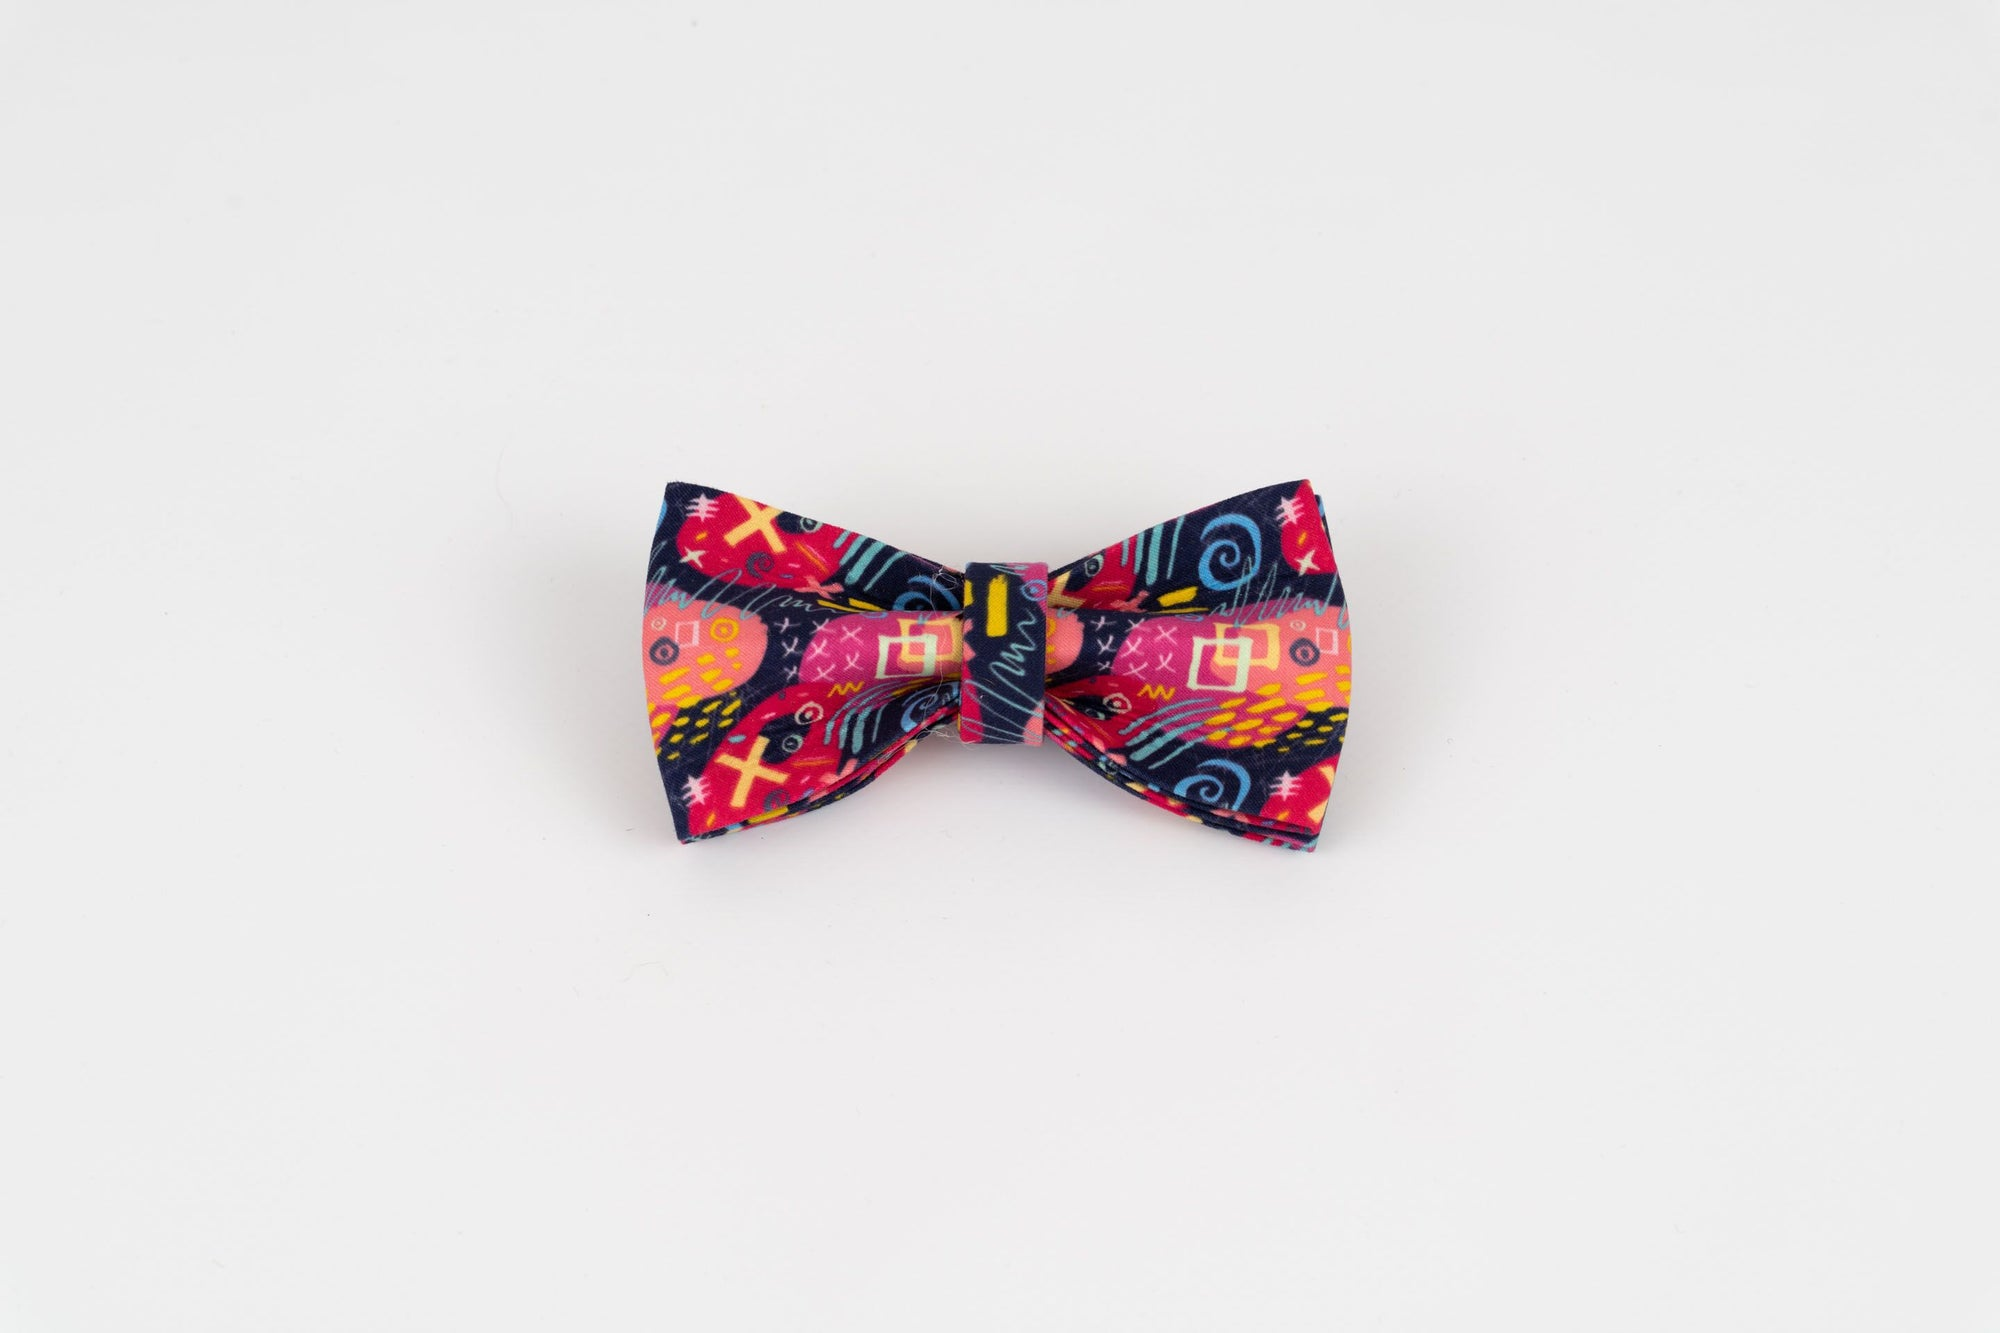 King Street Dog Bow Tie